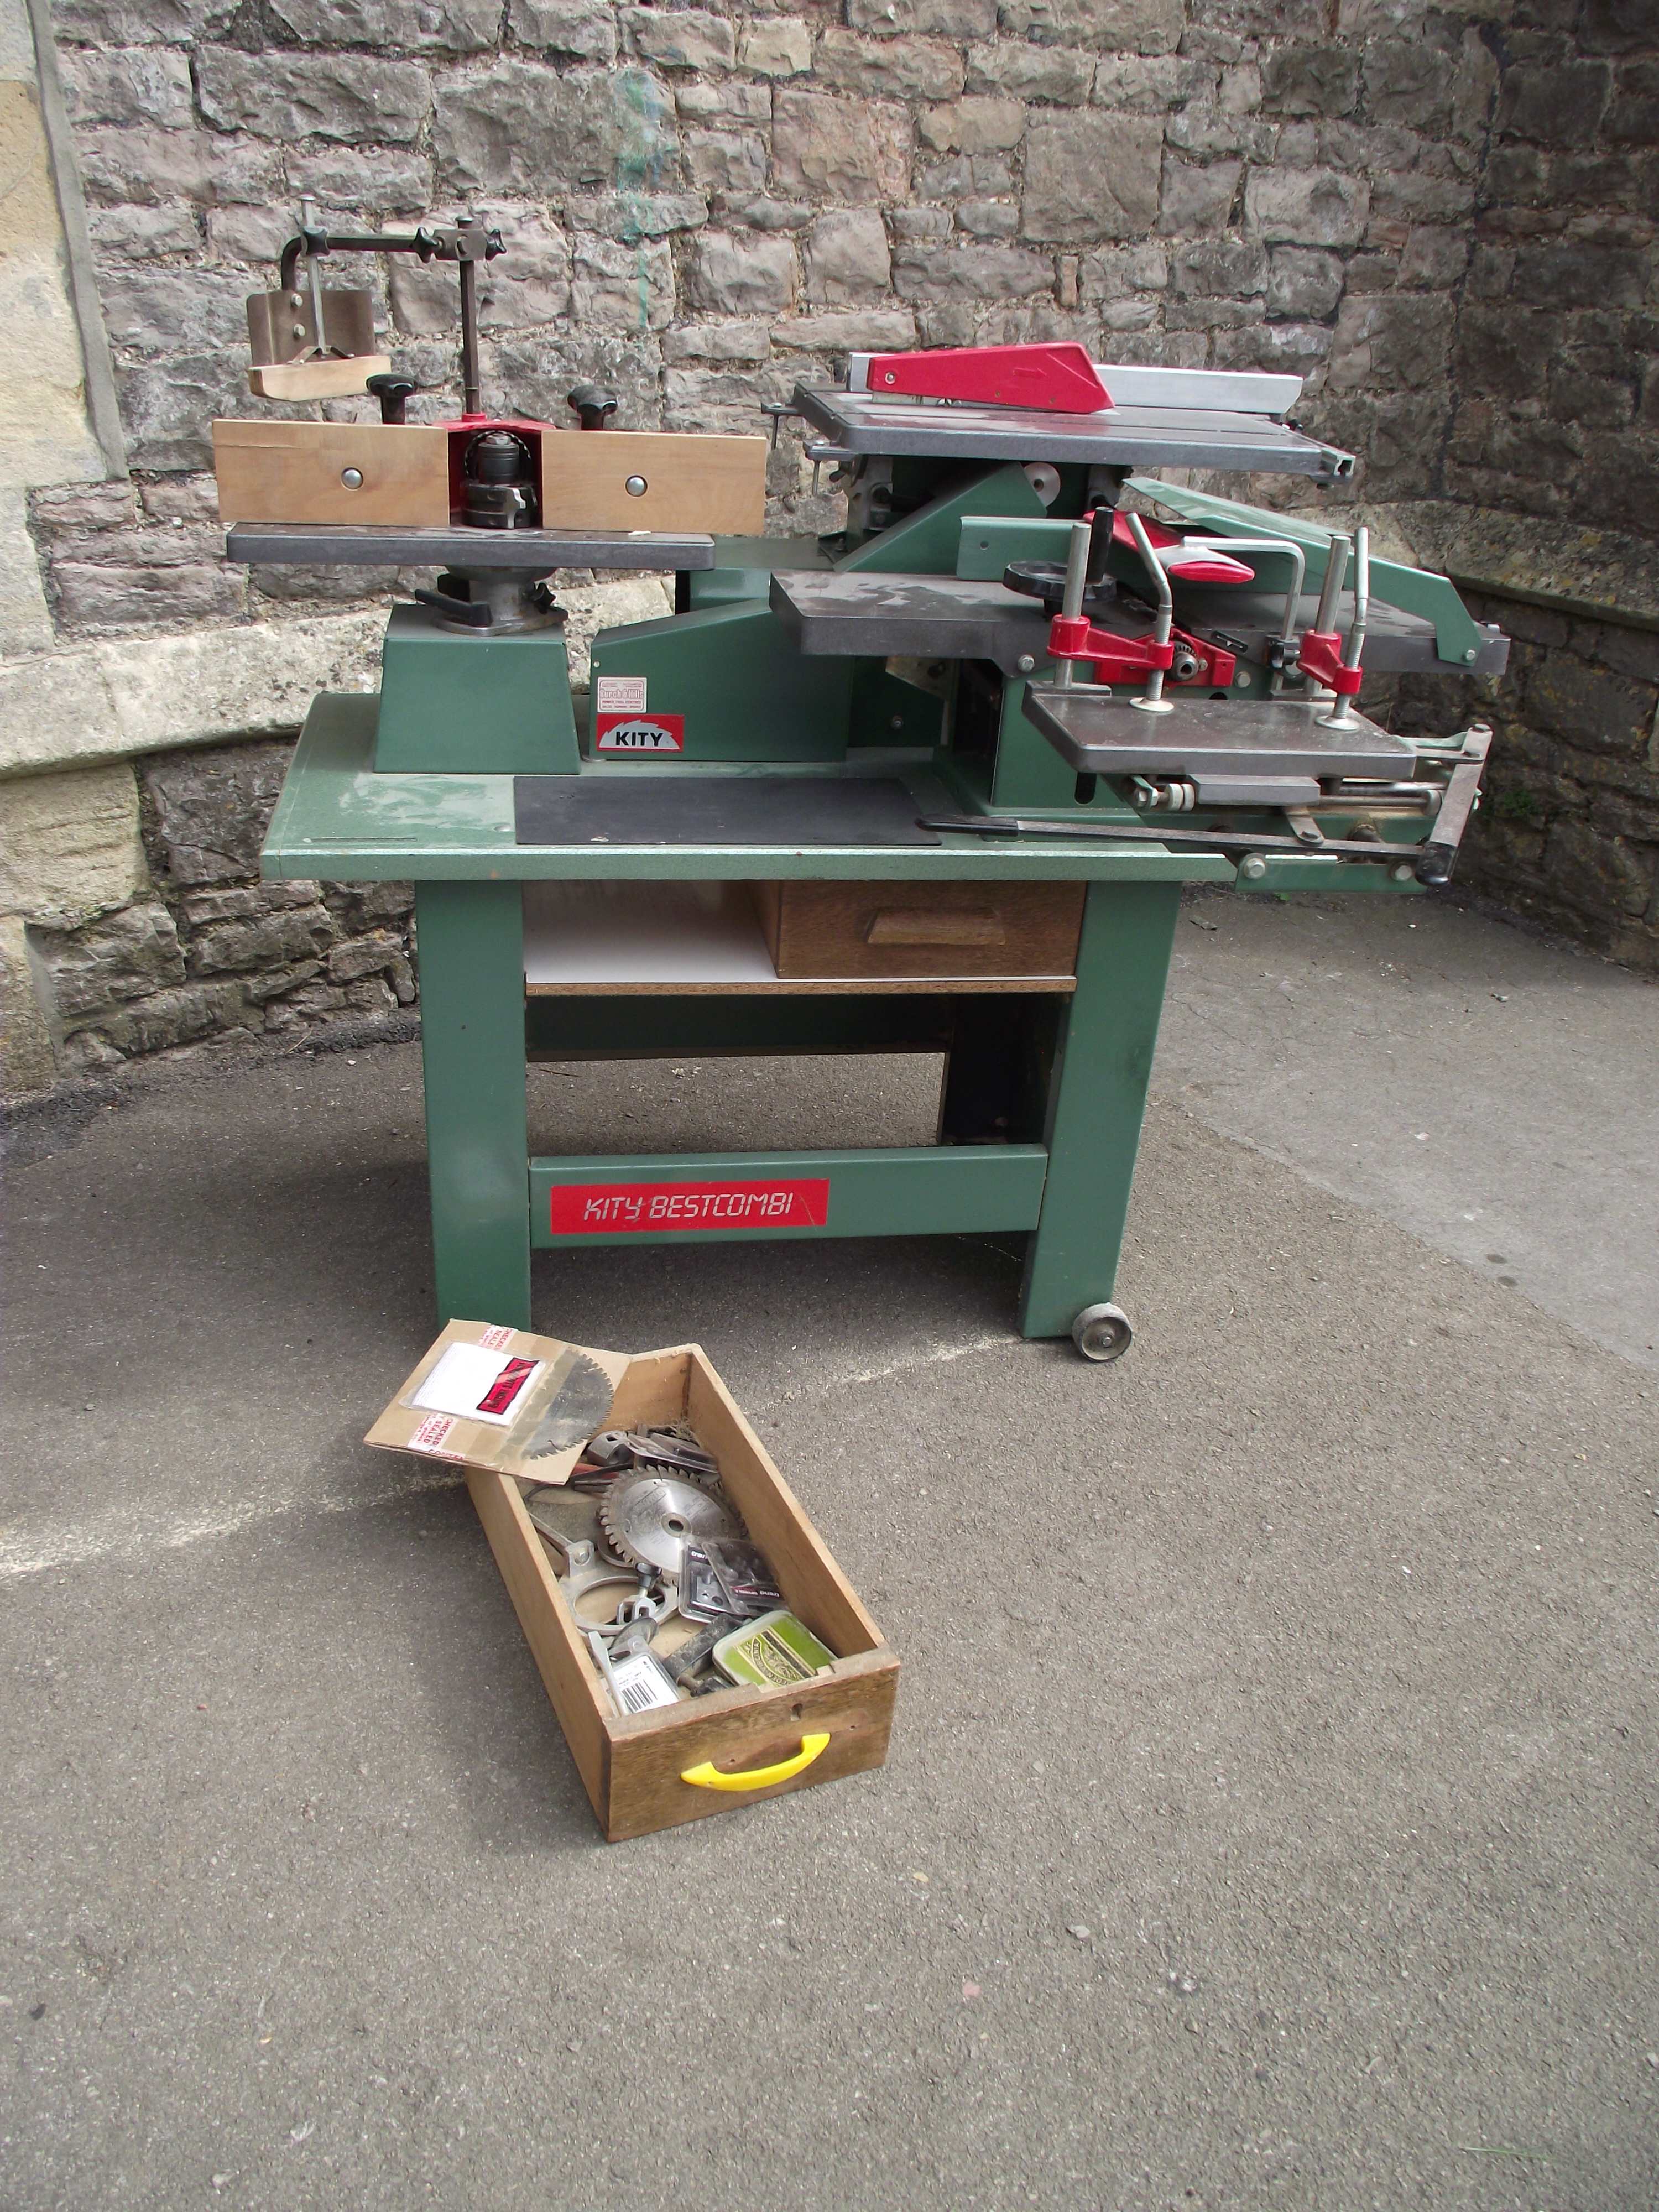 A contemporary workshop multi woodworking machine, Kity BestCombi, with spindle moulder, morticer - Image 4 of 5